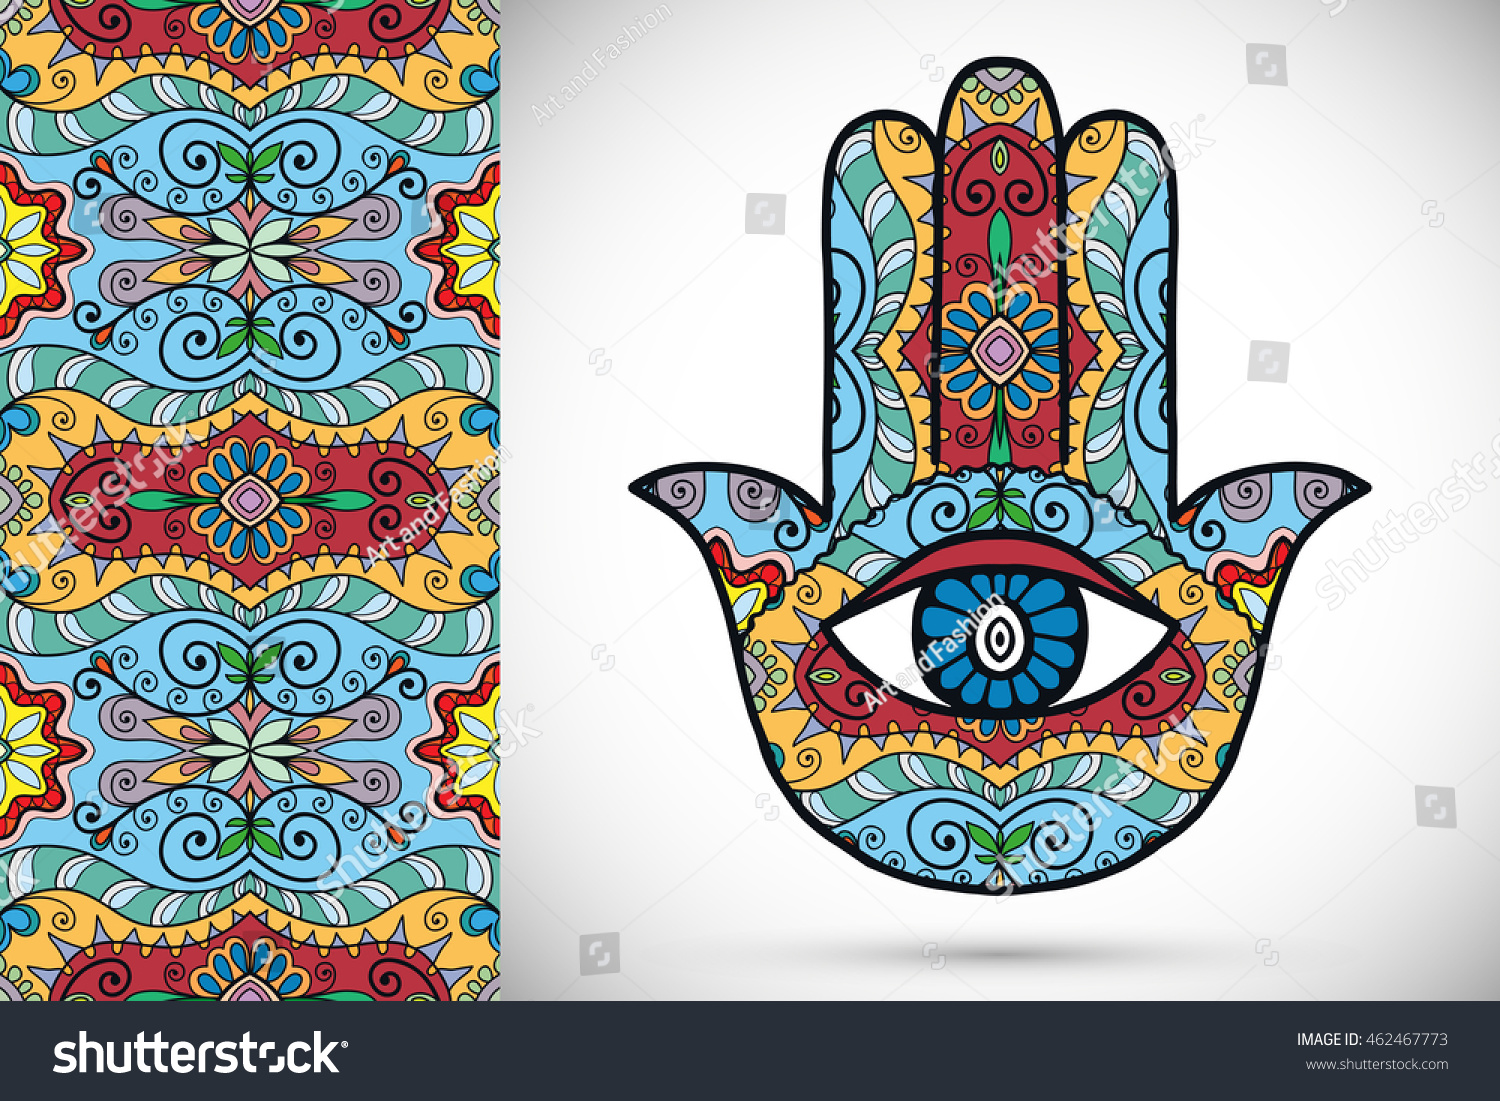 Boho hamsa hand protection amulet symbol of strength and happiness with seamless geometric pattern Abstract graphic background vertical floral doodle pattern vector illustration